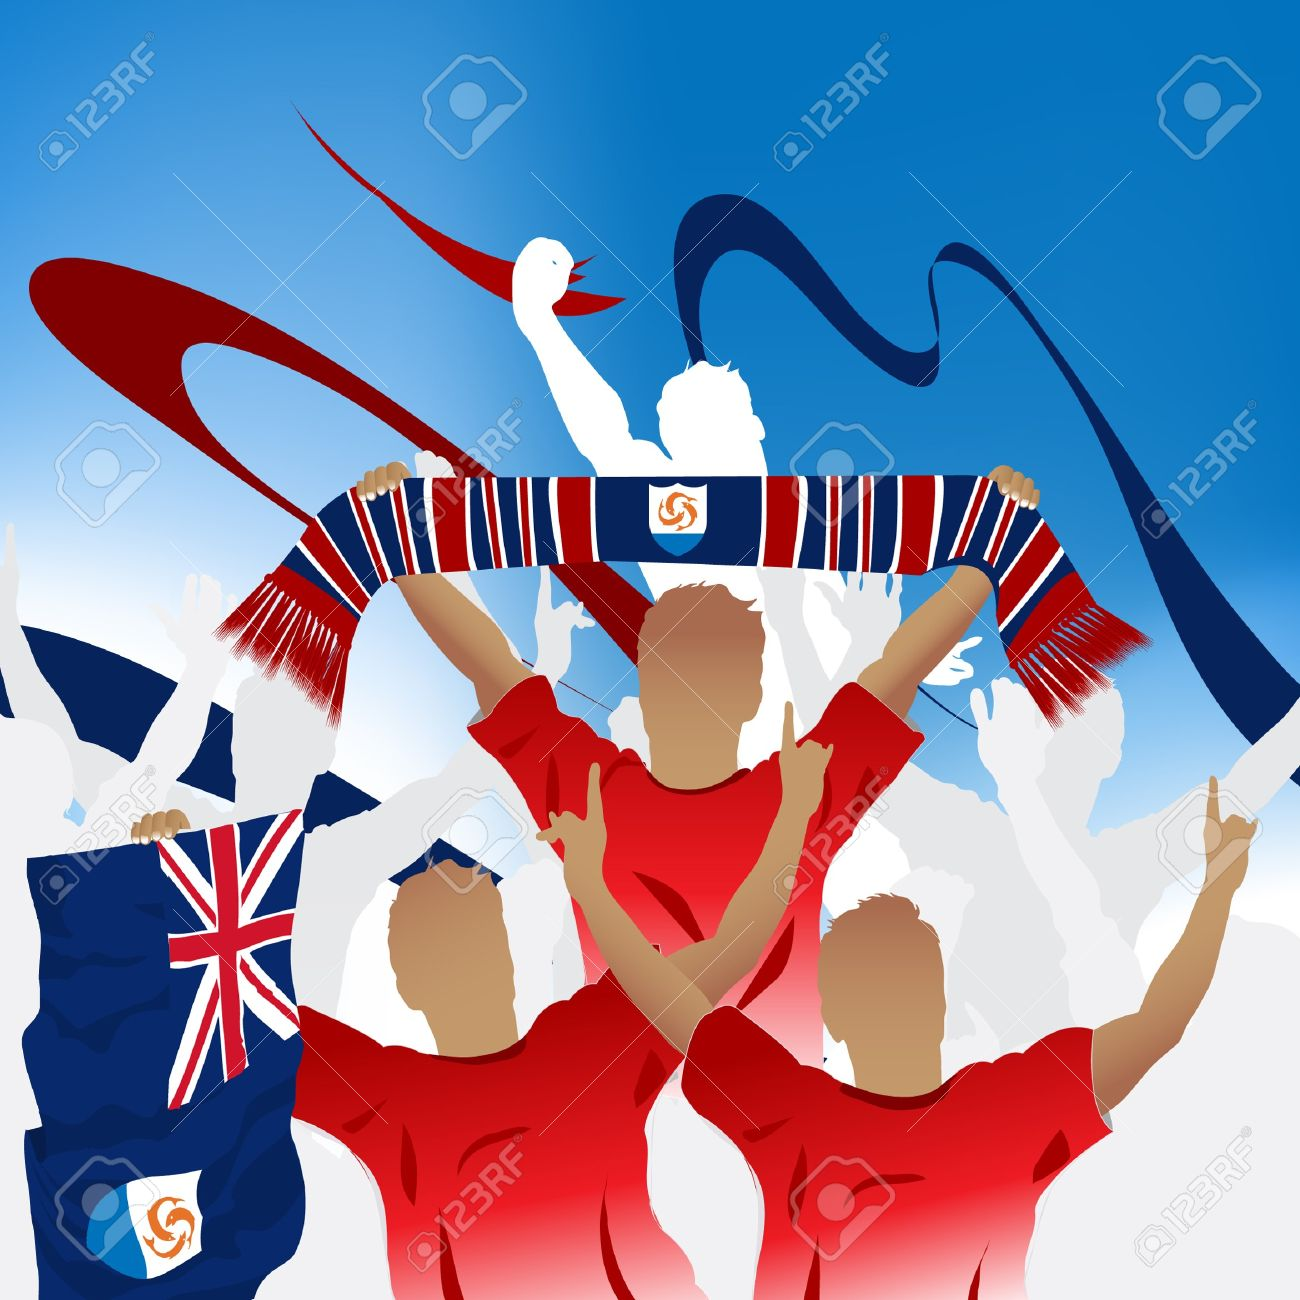 Crowd of soccer fan and three soccer players with scarf and flag. Stock Vector - 7864681